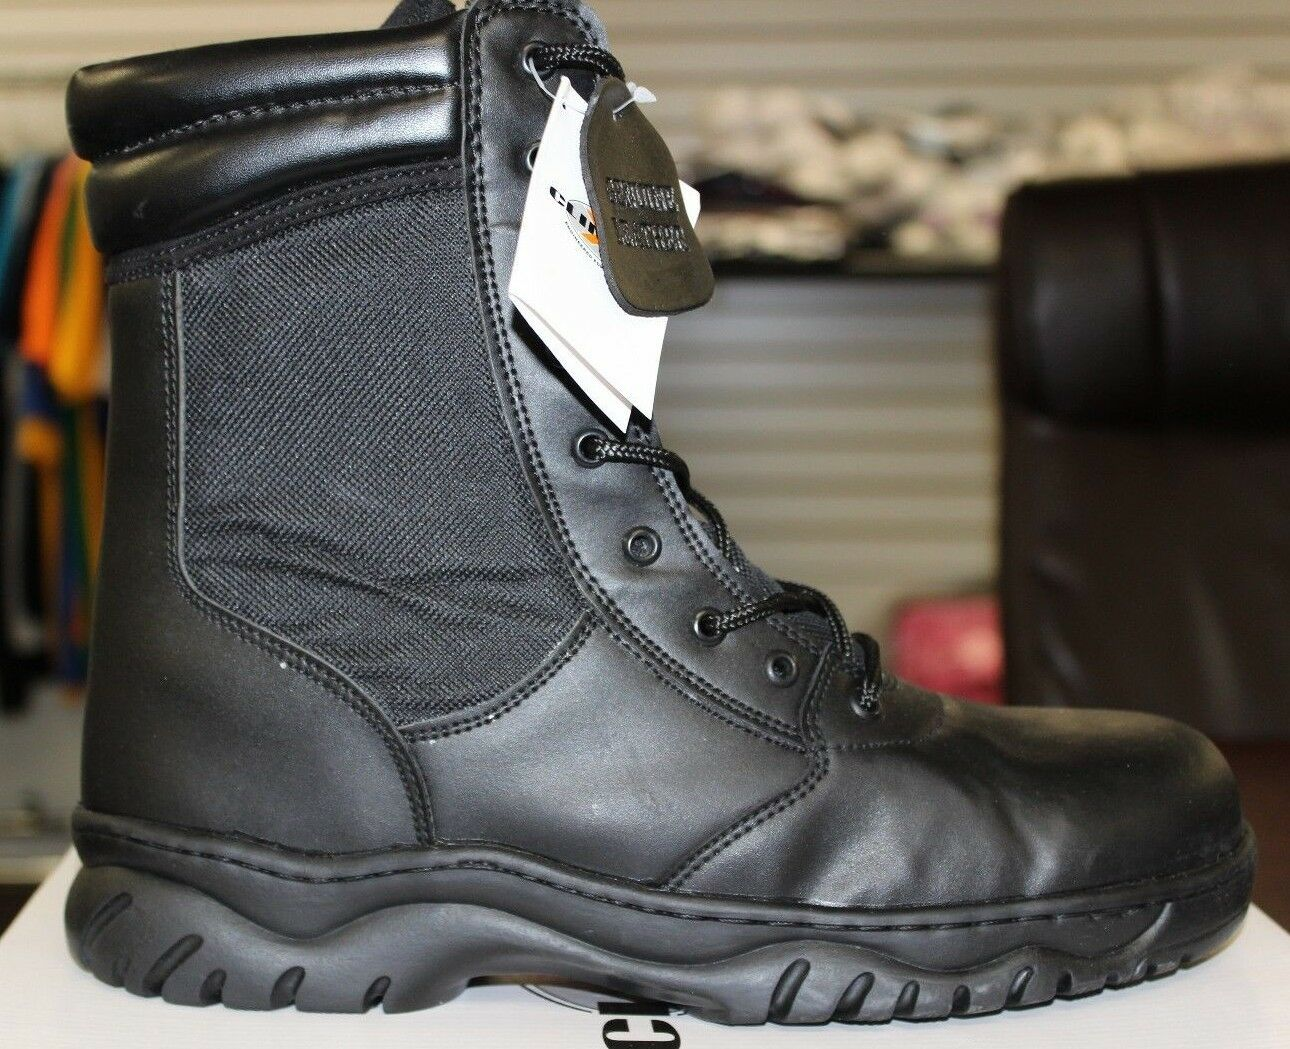 Climate X Black Swat Work Boots Zipper Leather Upper Rubber Sole Officer